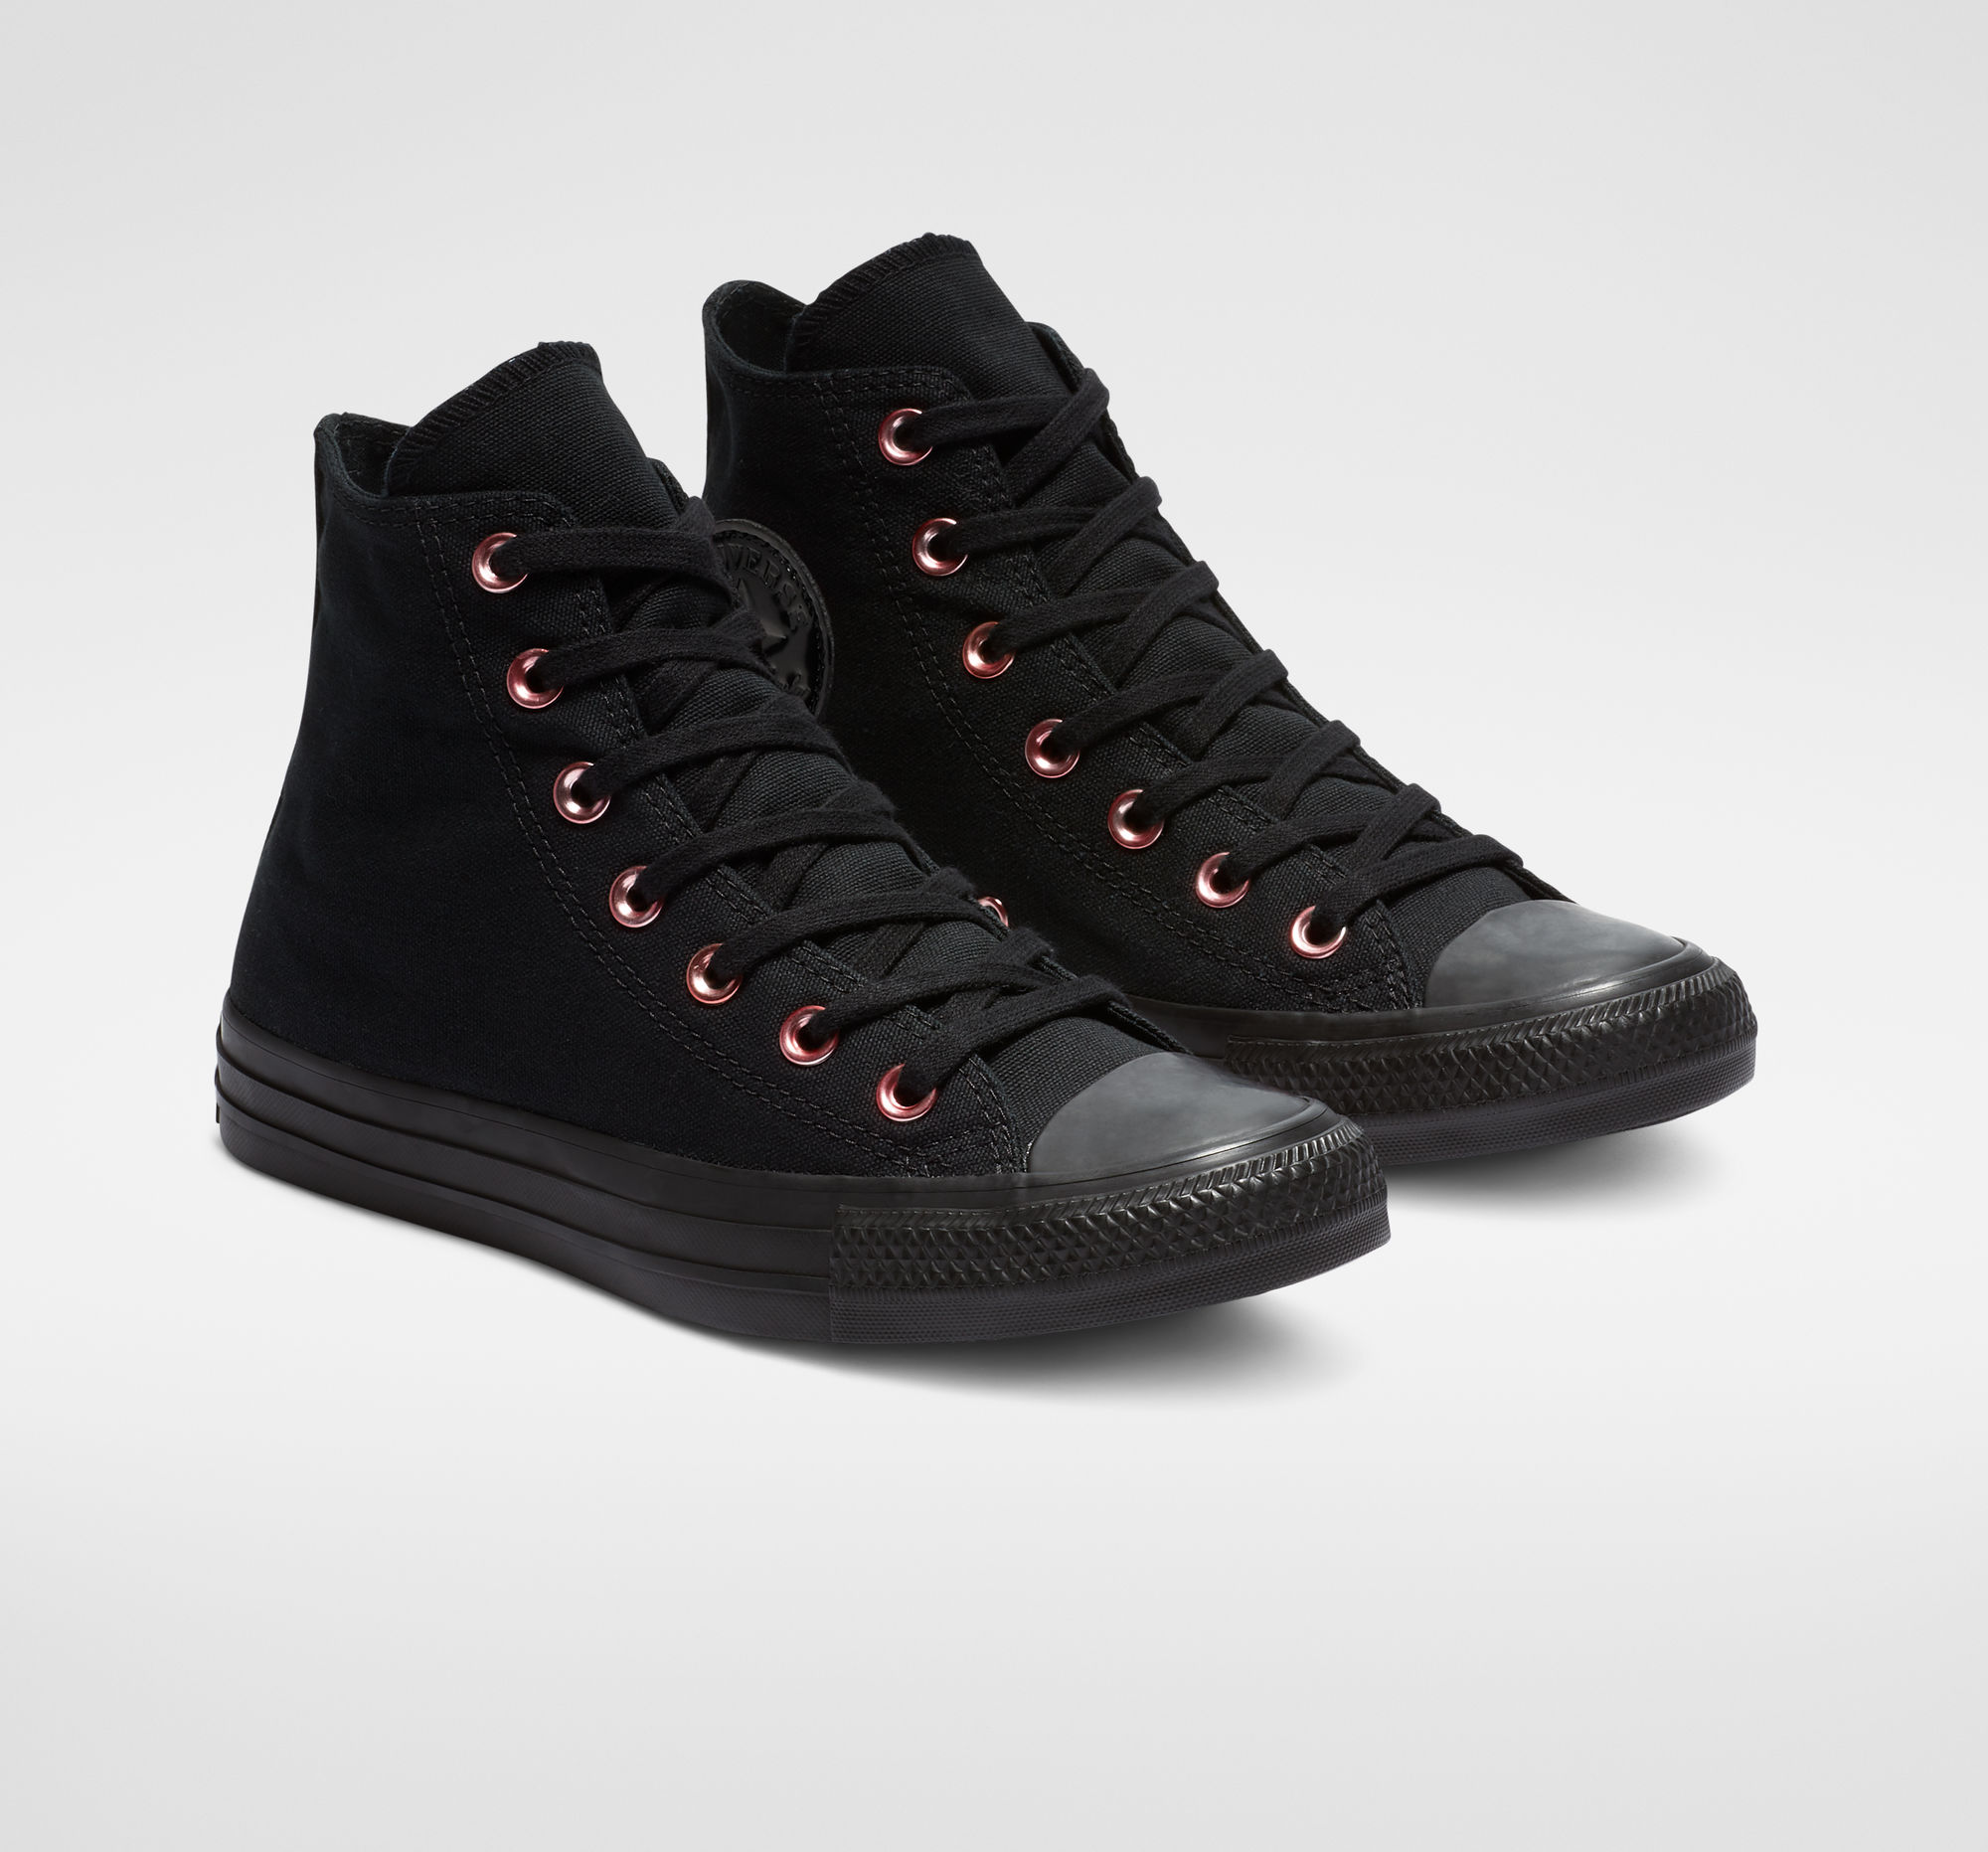 Chuck Taylor All Star Hearts High Top in Black/Rhubarb/Black